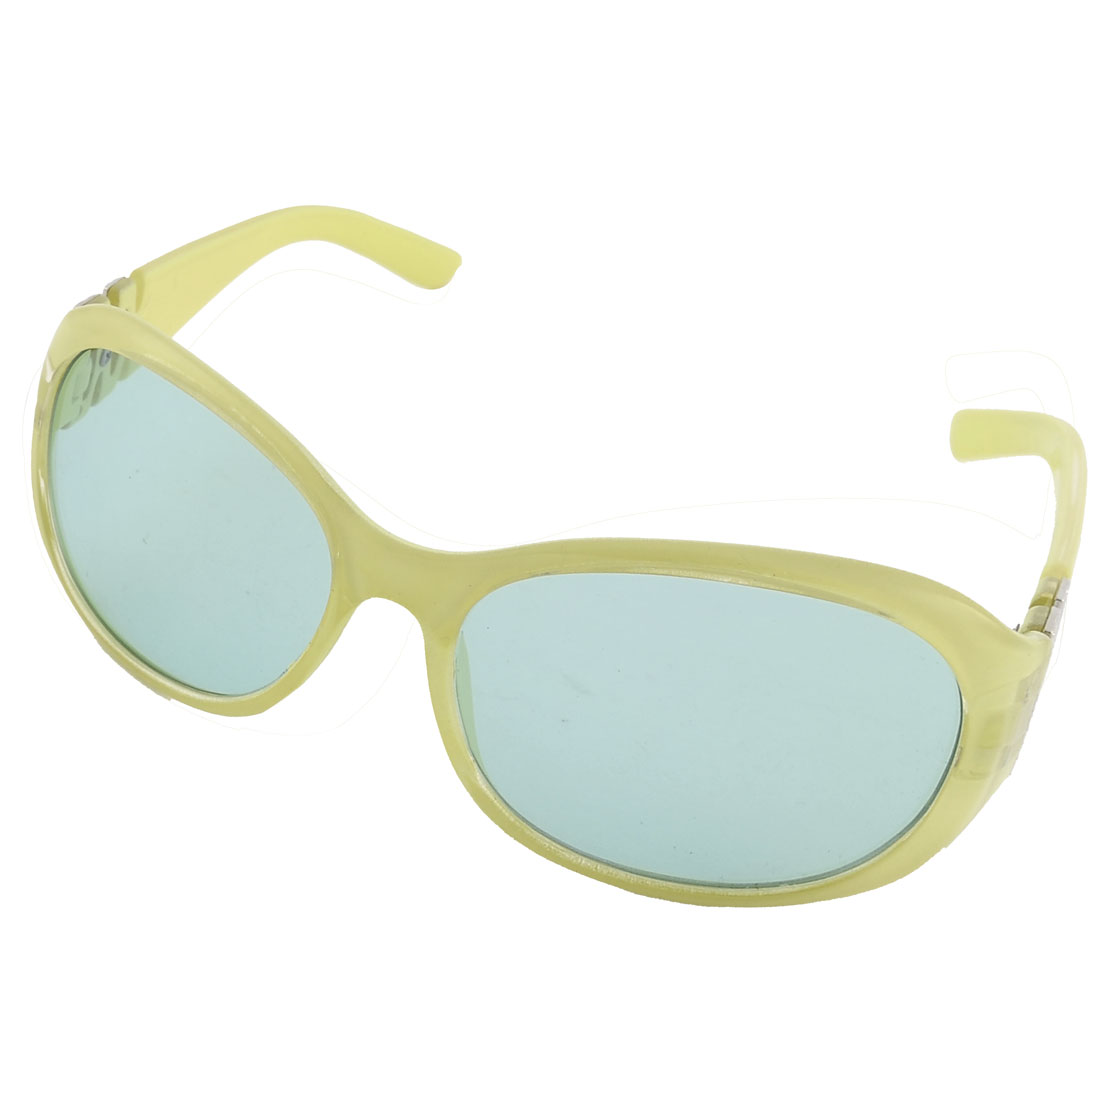 Women Plastic Full Rim Single Bridge Lens Eyewear Sunglasses Green Yellow